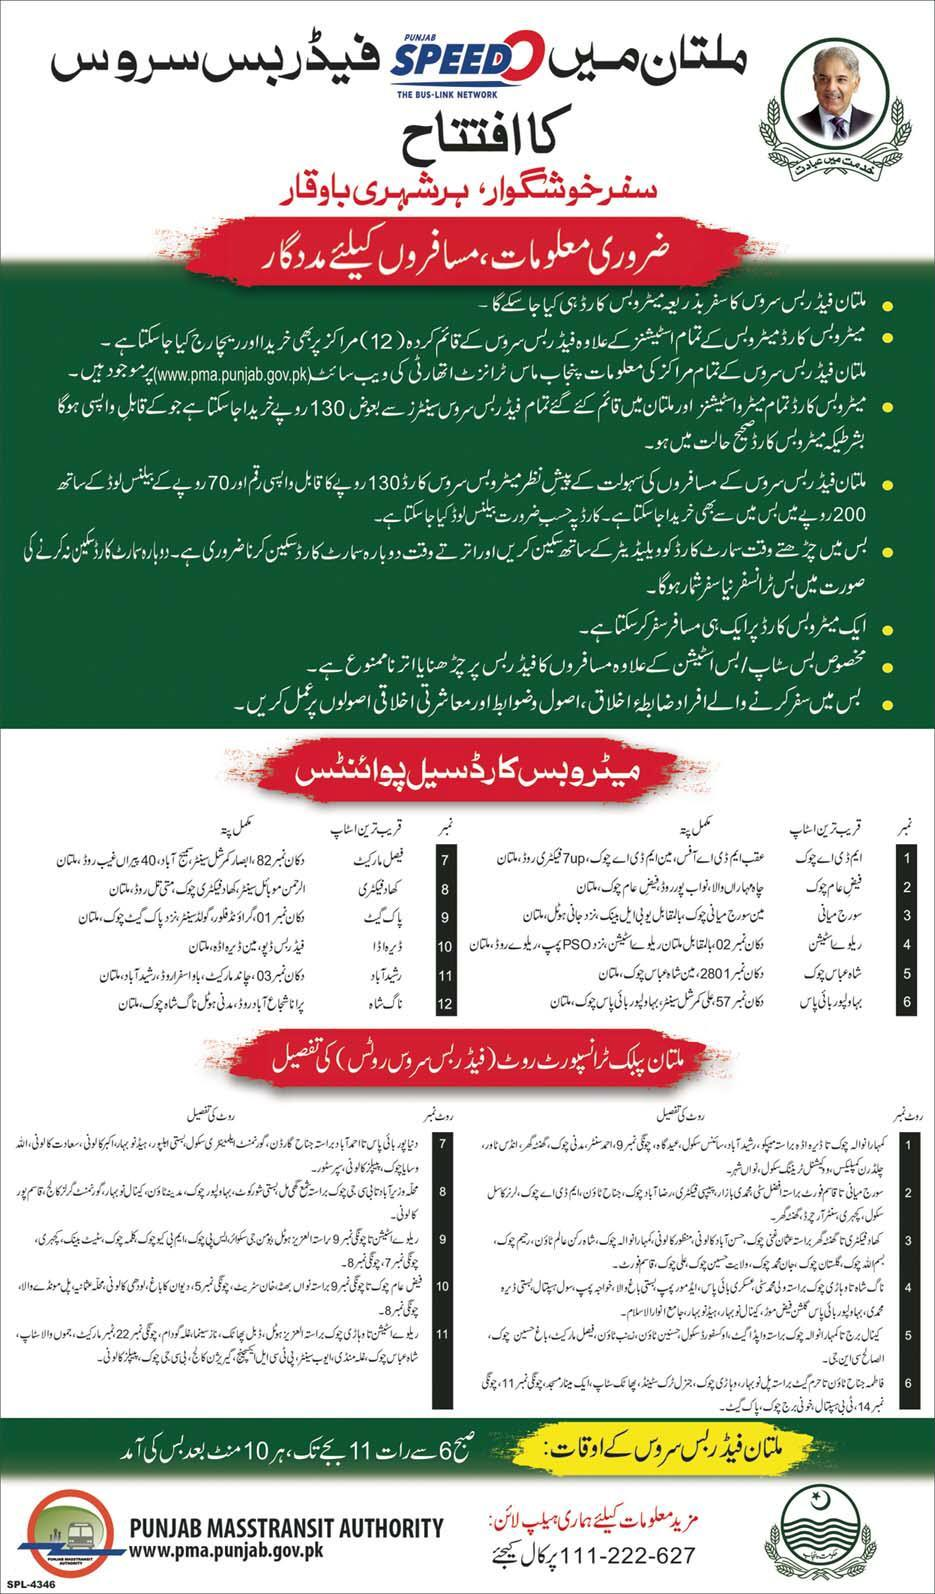 Multan Feeder Bus Service Inauguration After Metrobus Project - Routes Details and Metro Bus Card and Tickets Sale Points